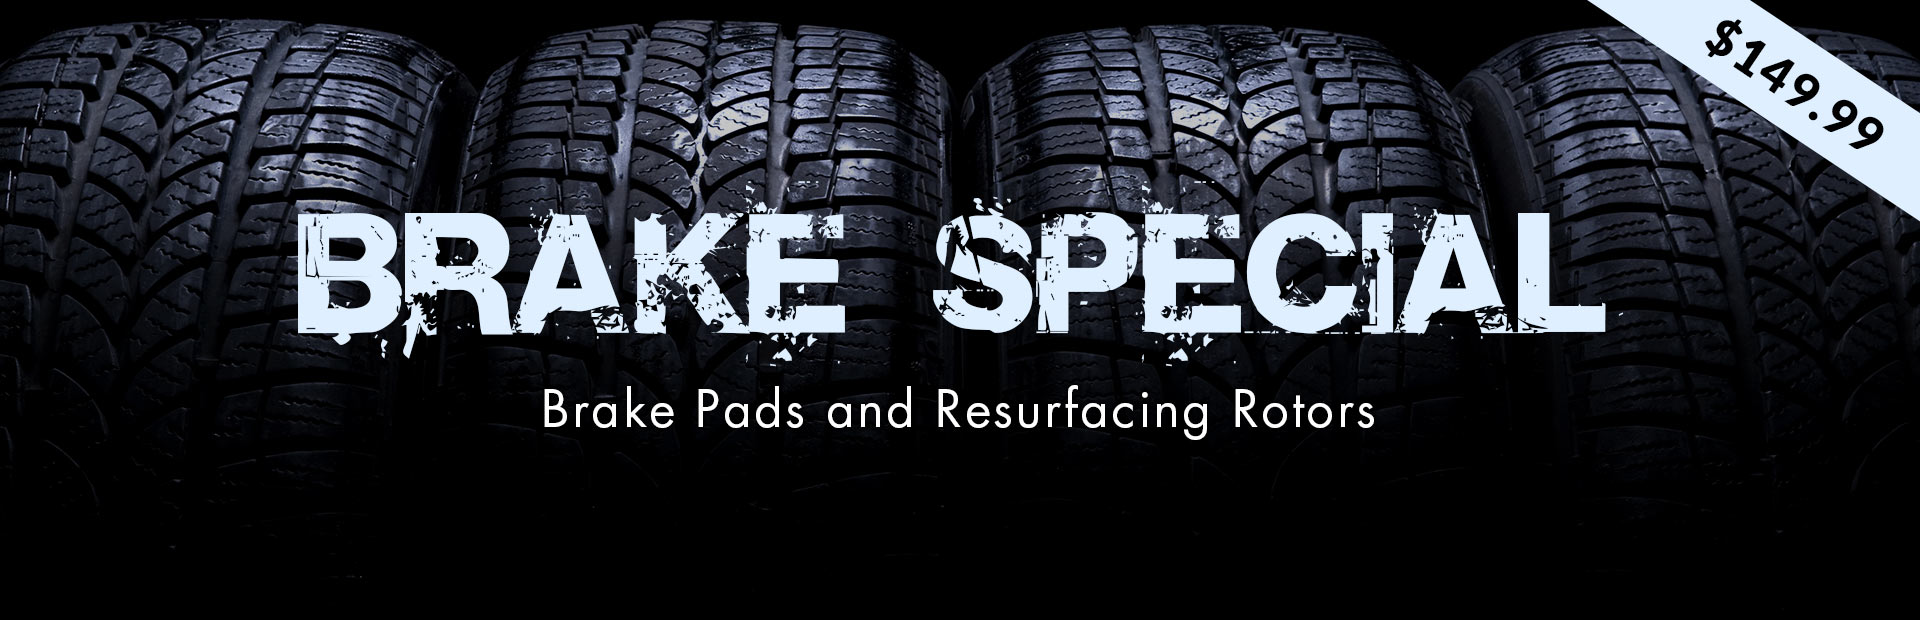 $149.99 Brake Special: Click here for details.